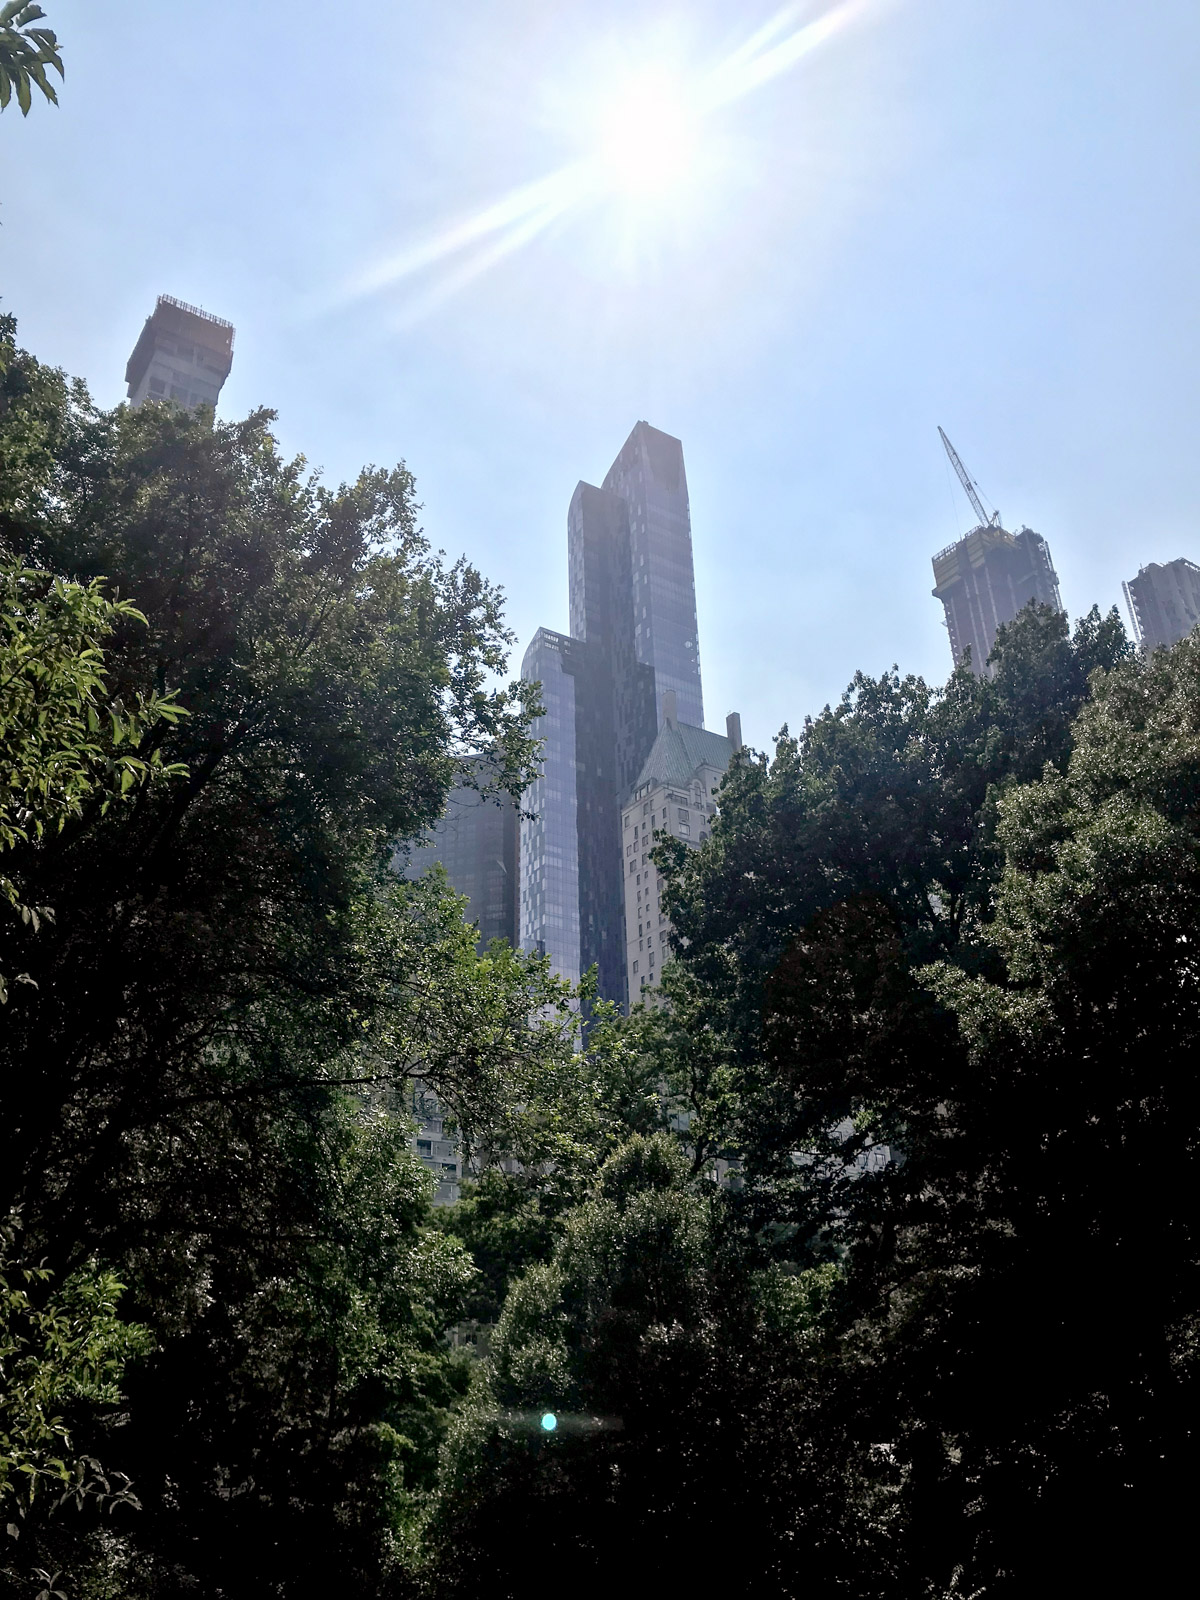 A low angle shot of trees in a park, in the background are very tall skyscrapers.